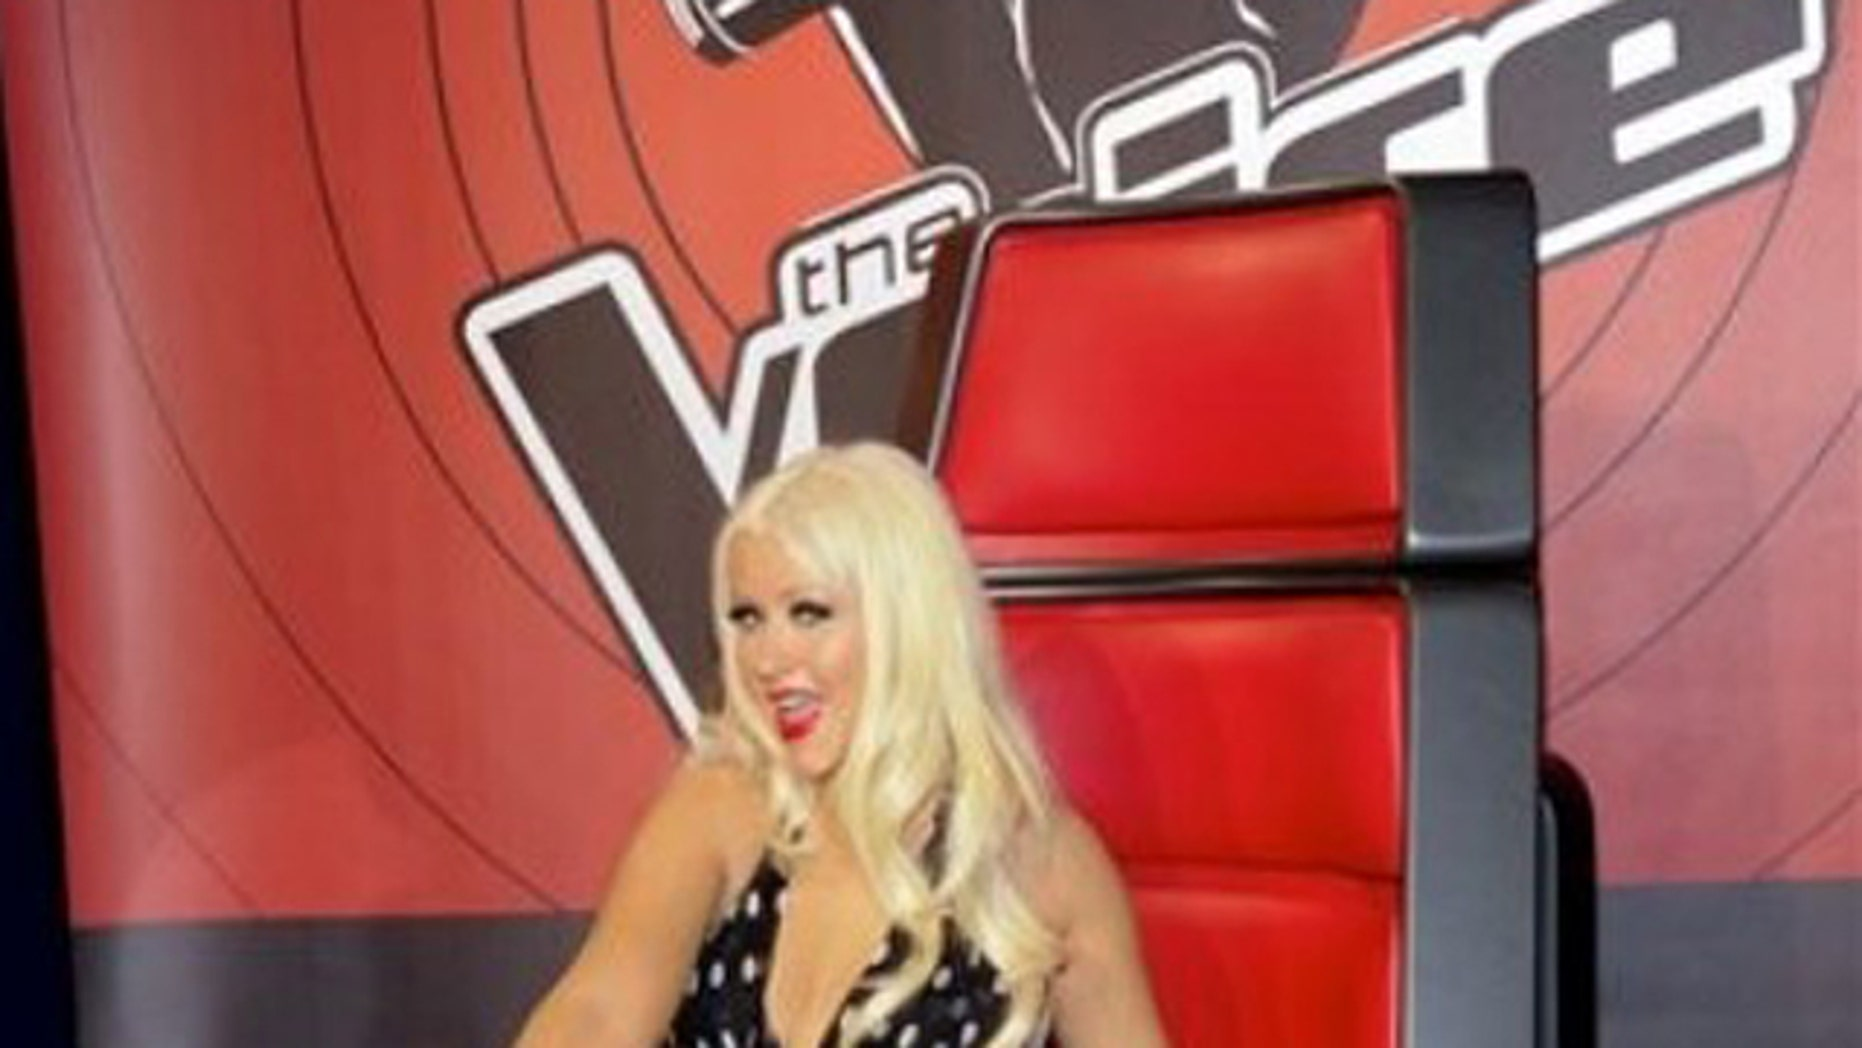 """Singer Christina Aguilera, from """"The Voice"""", attends the NBC Network Upfront on Monday, May 16, 2011 in New York."""